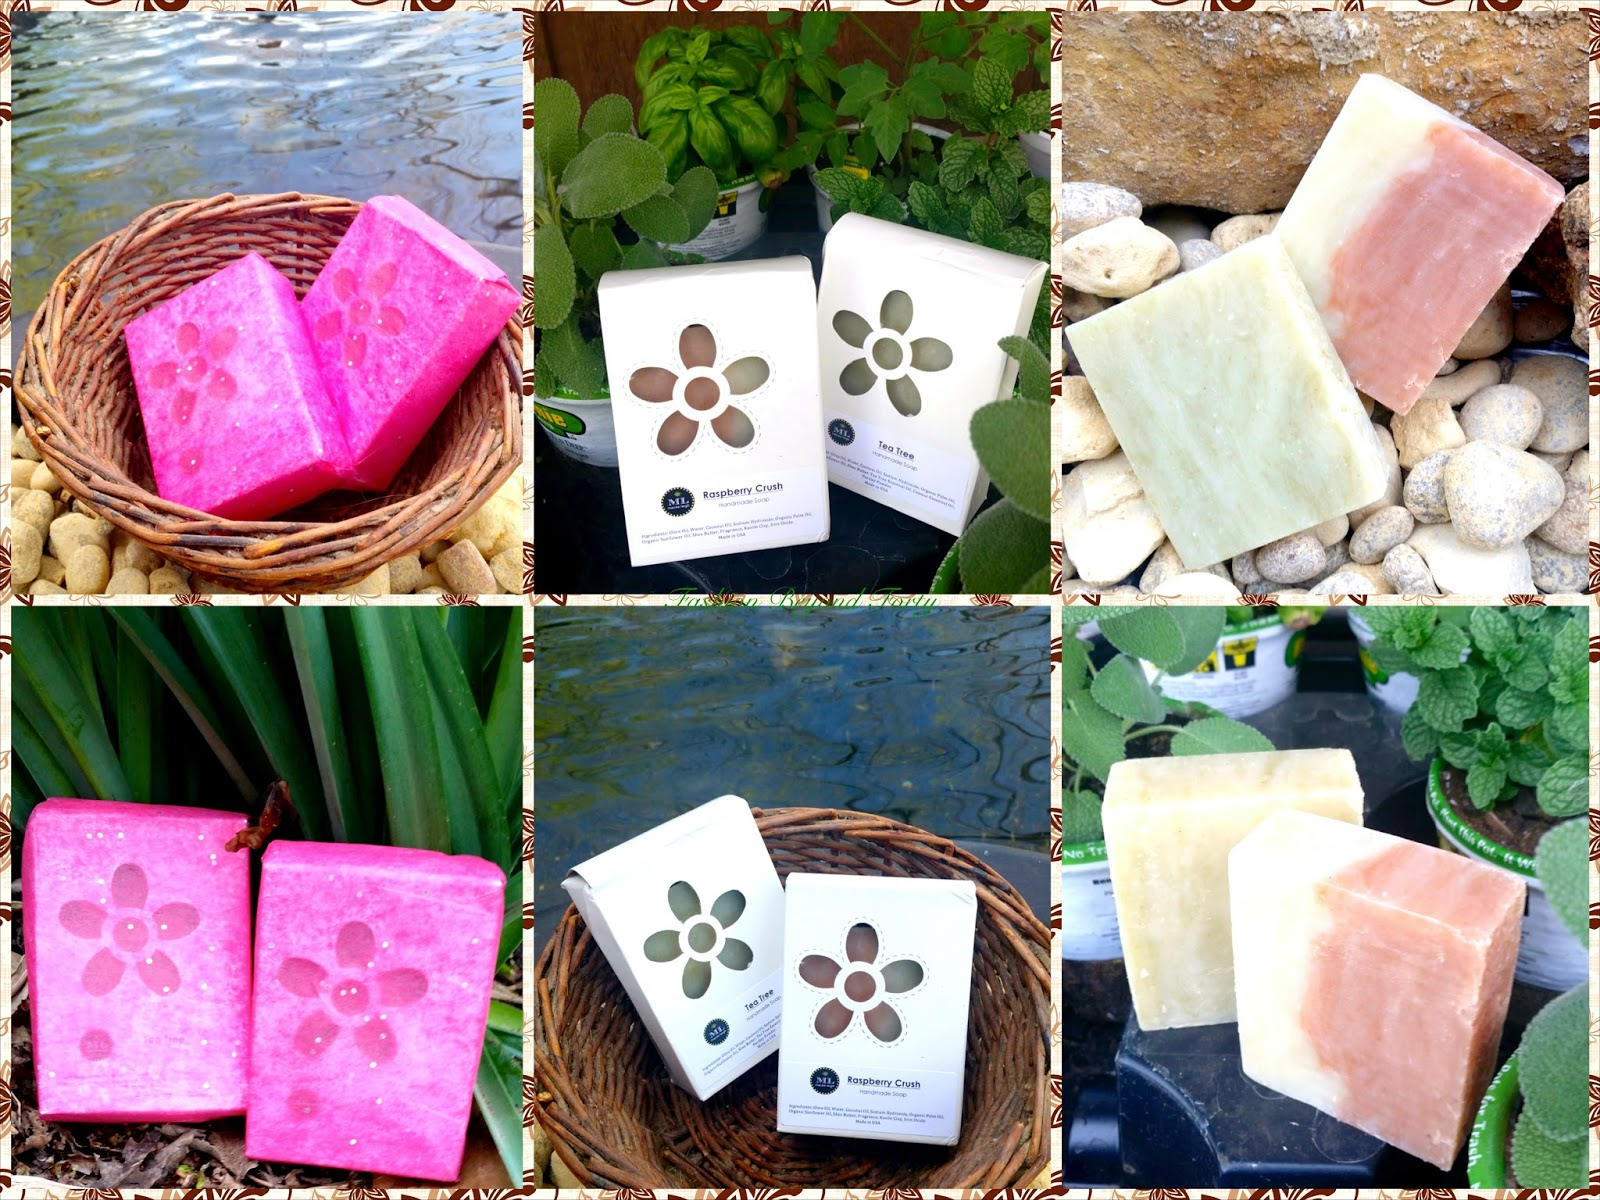 All Natural Soaps from Macee Leigh